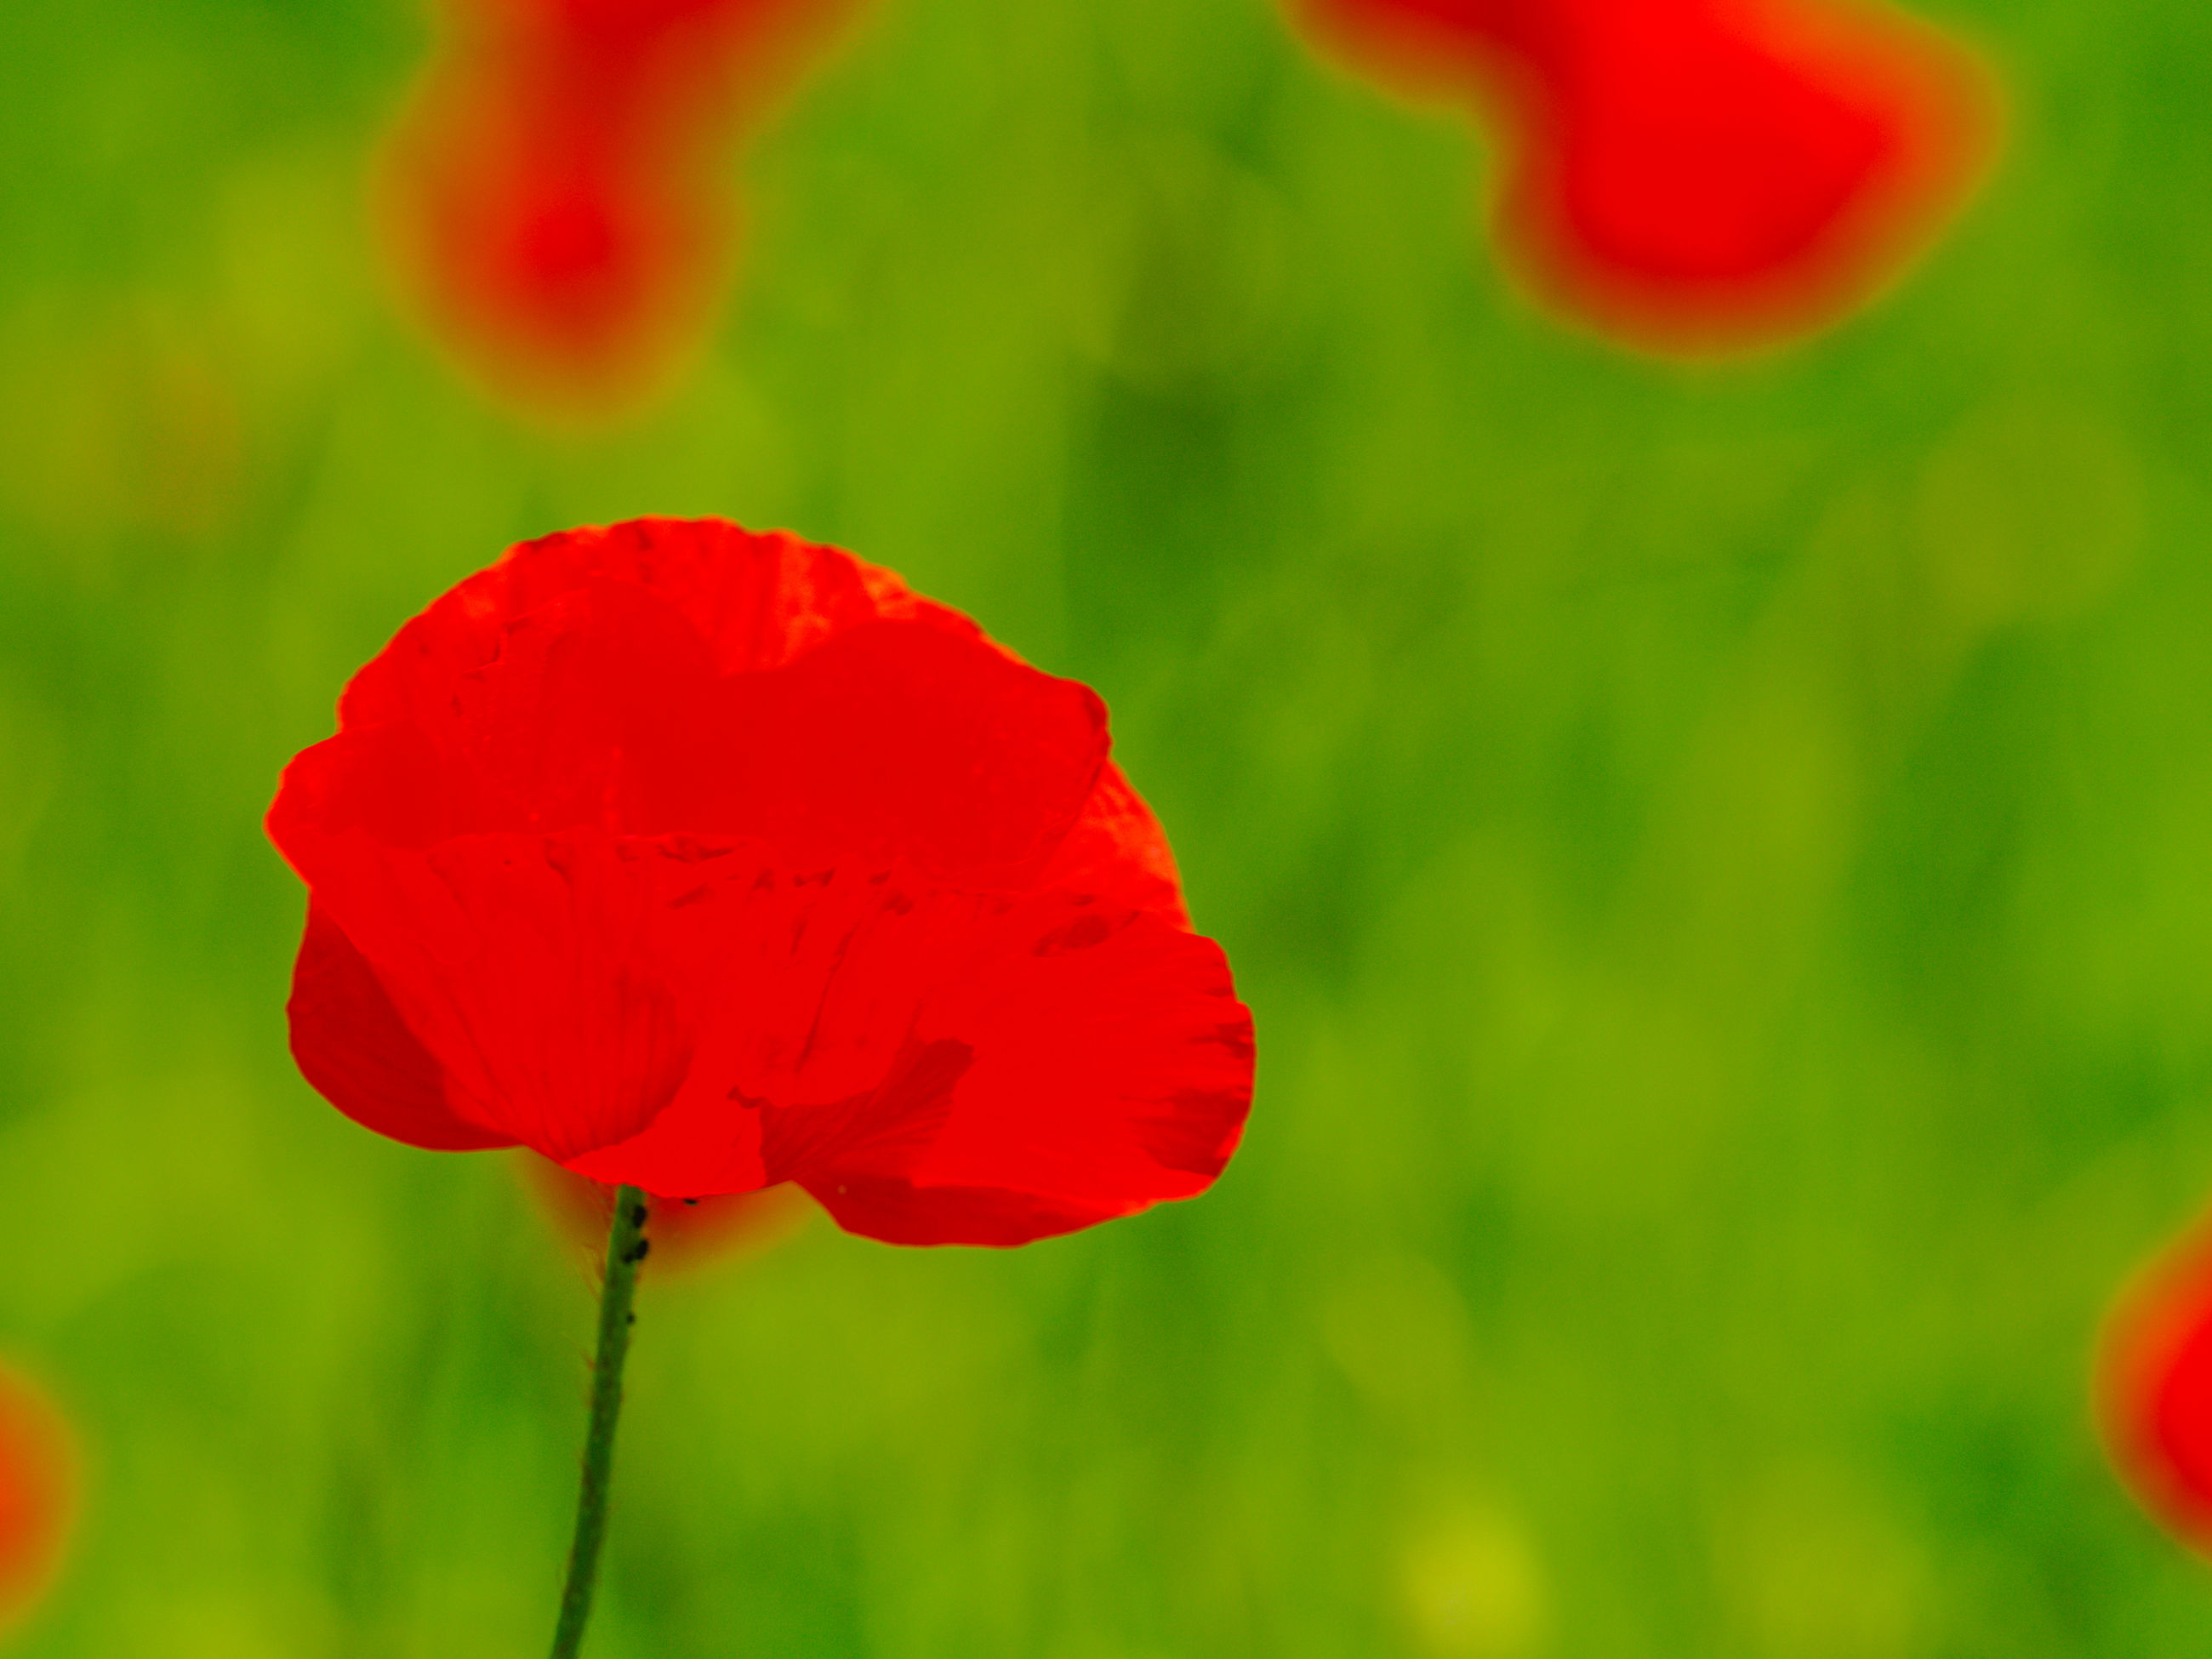 poppy, plant, flower, red, flowering plant, freshness, beauty in nature, close-up, petal, fragility, nature, flower head, inflorescence, macro photography, meadow, no people, growth, field, focus on foreground, wildflower, outdoors, plant stem, green, vibrant color, day, springtime